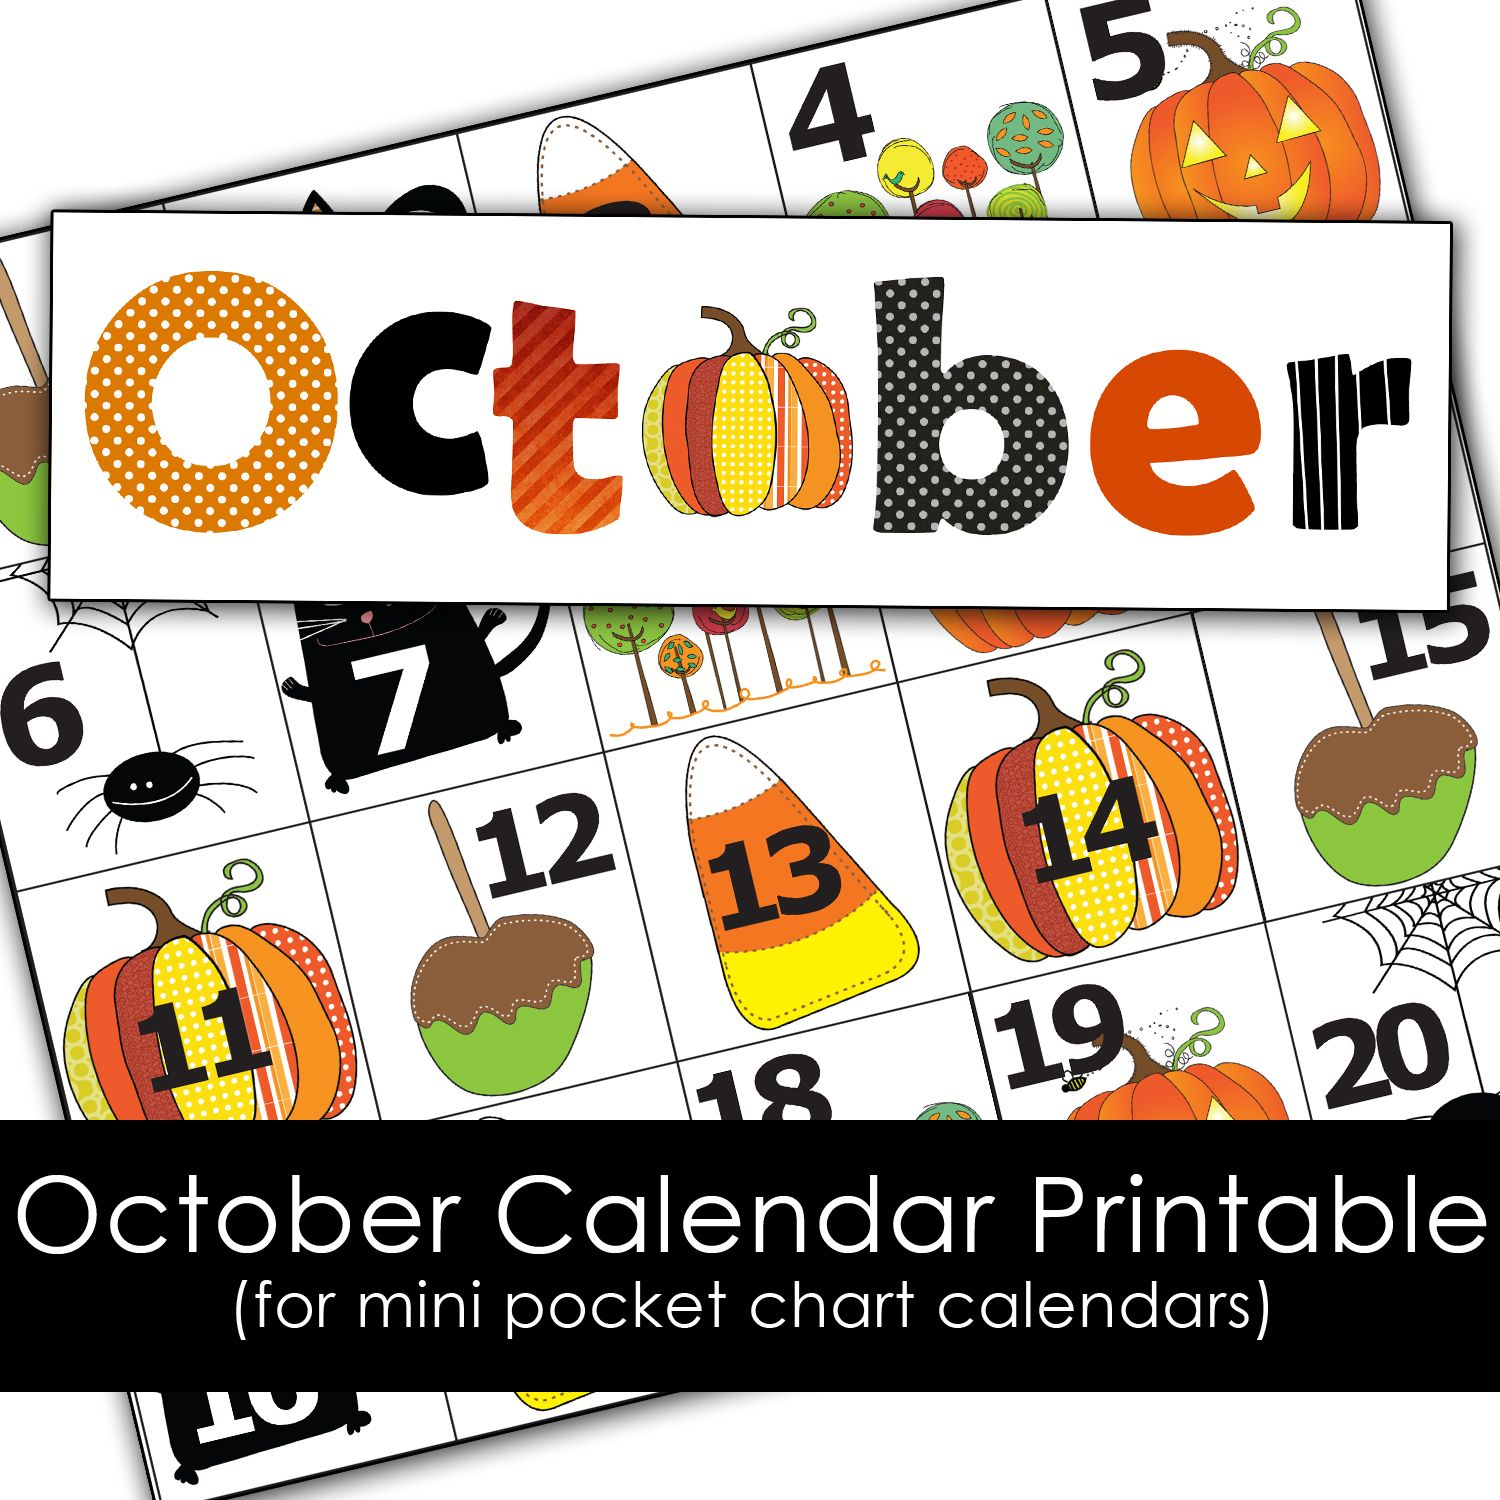 Free October Calendar Printables For Mini Pocket Chart